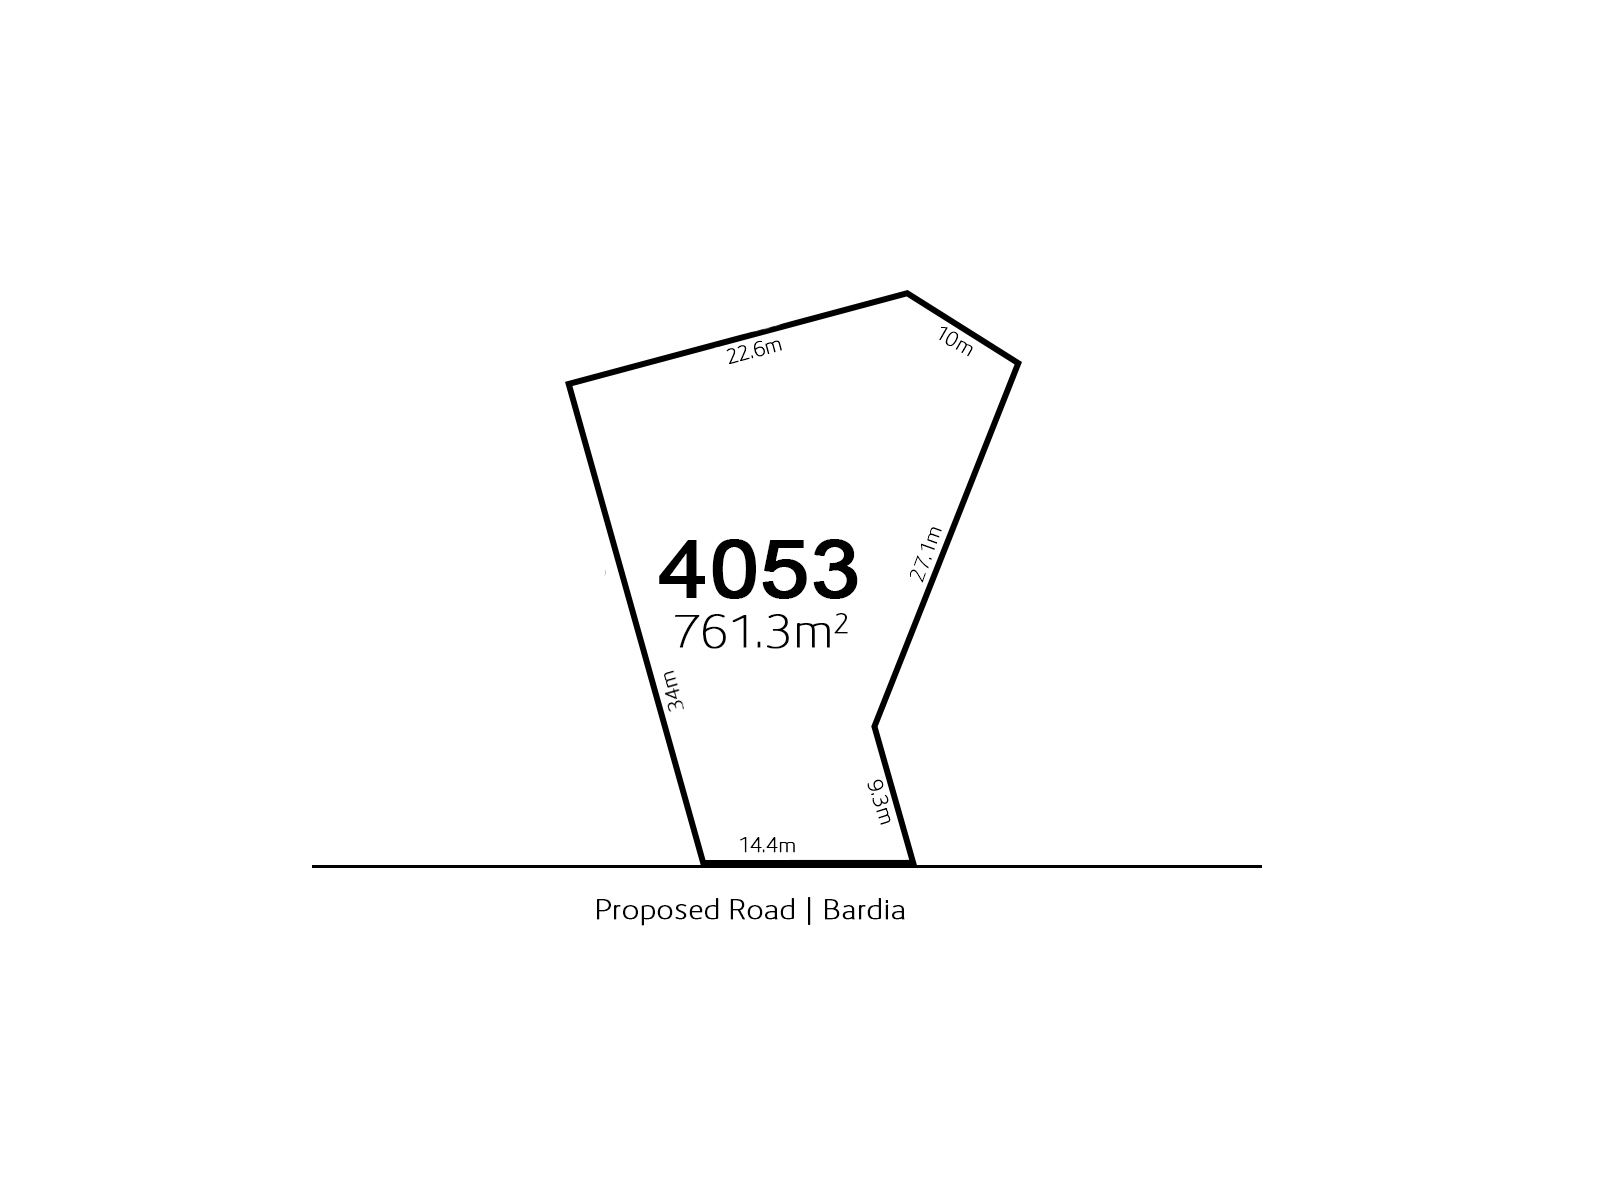 Bardia LOT 4053 Proposed Road | Bardia